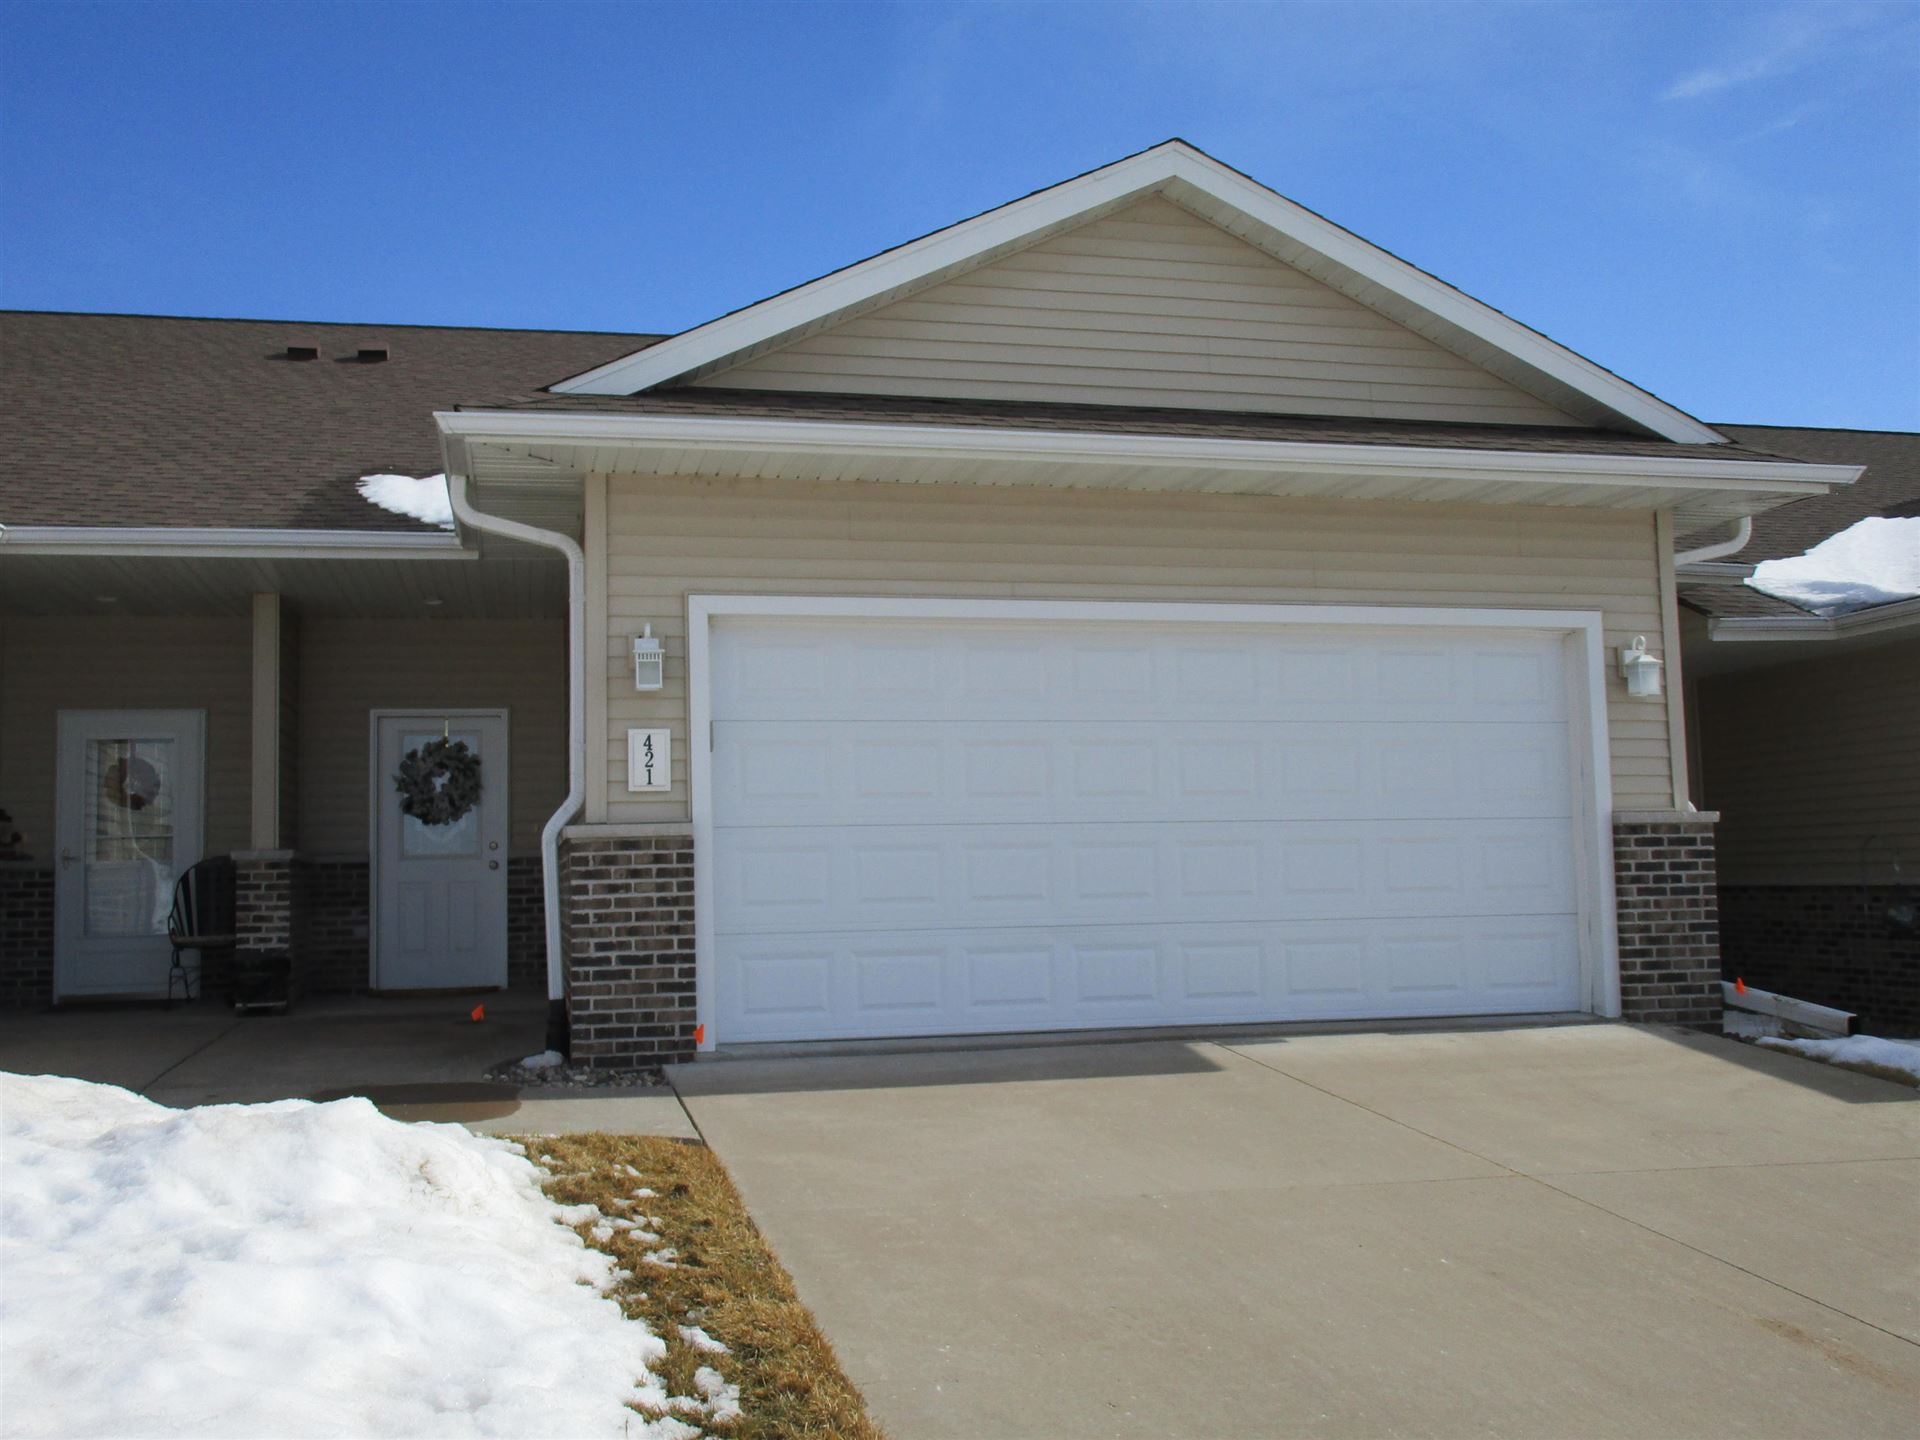 421 Cherry Lane S, Holmen, WI 54636 - MLS#: 1728506